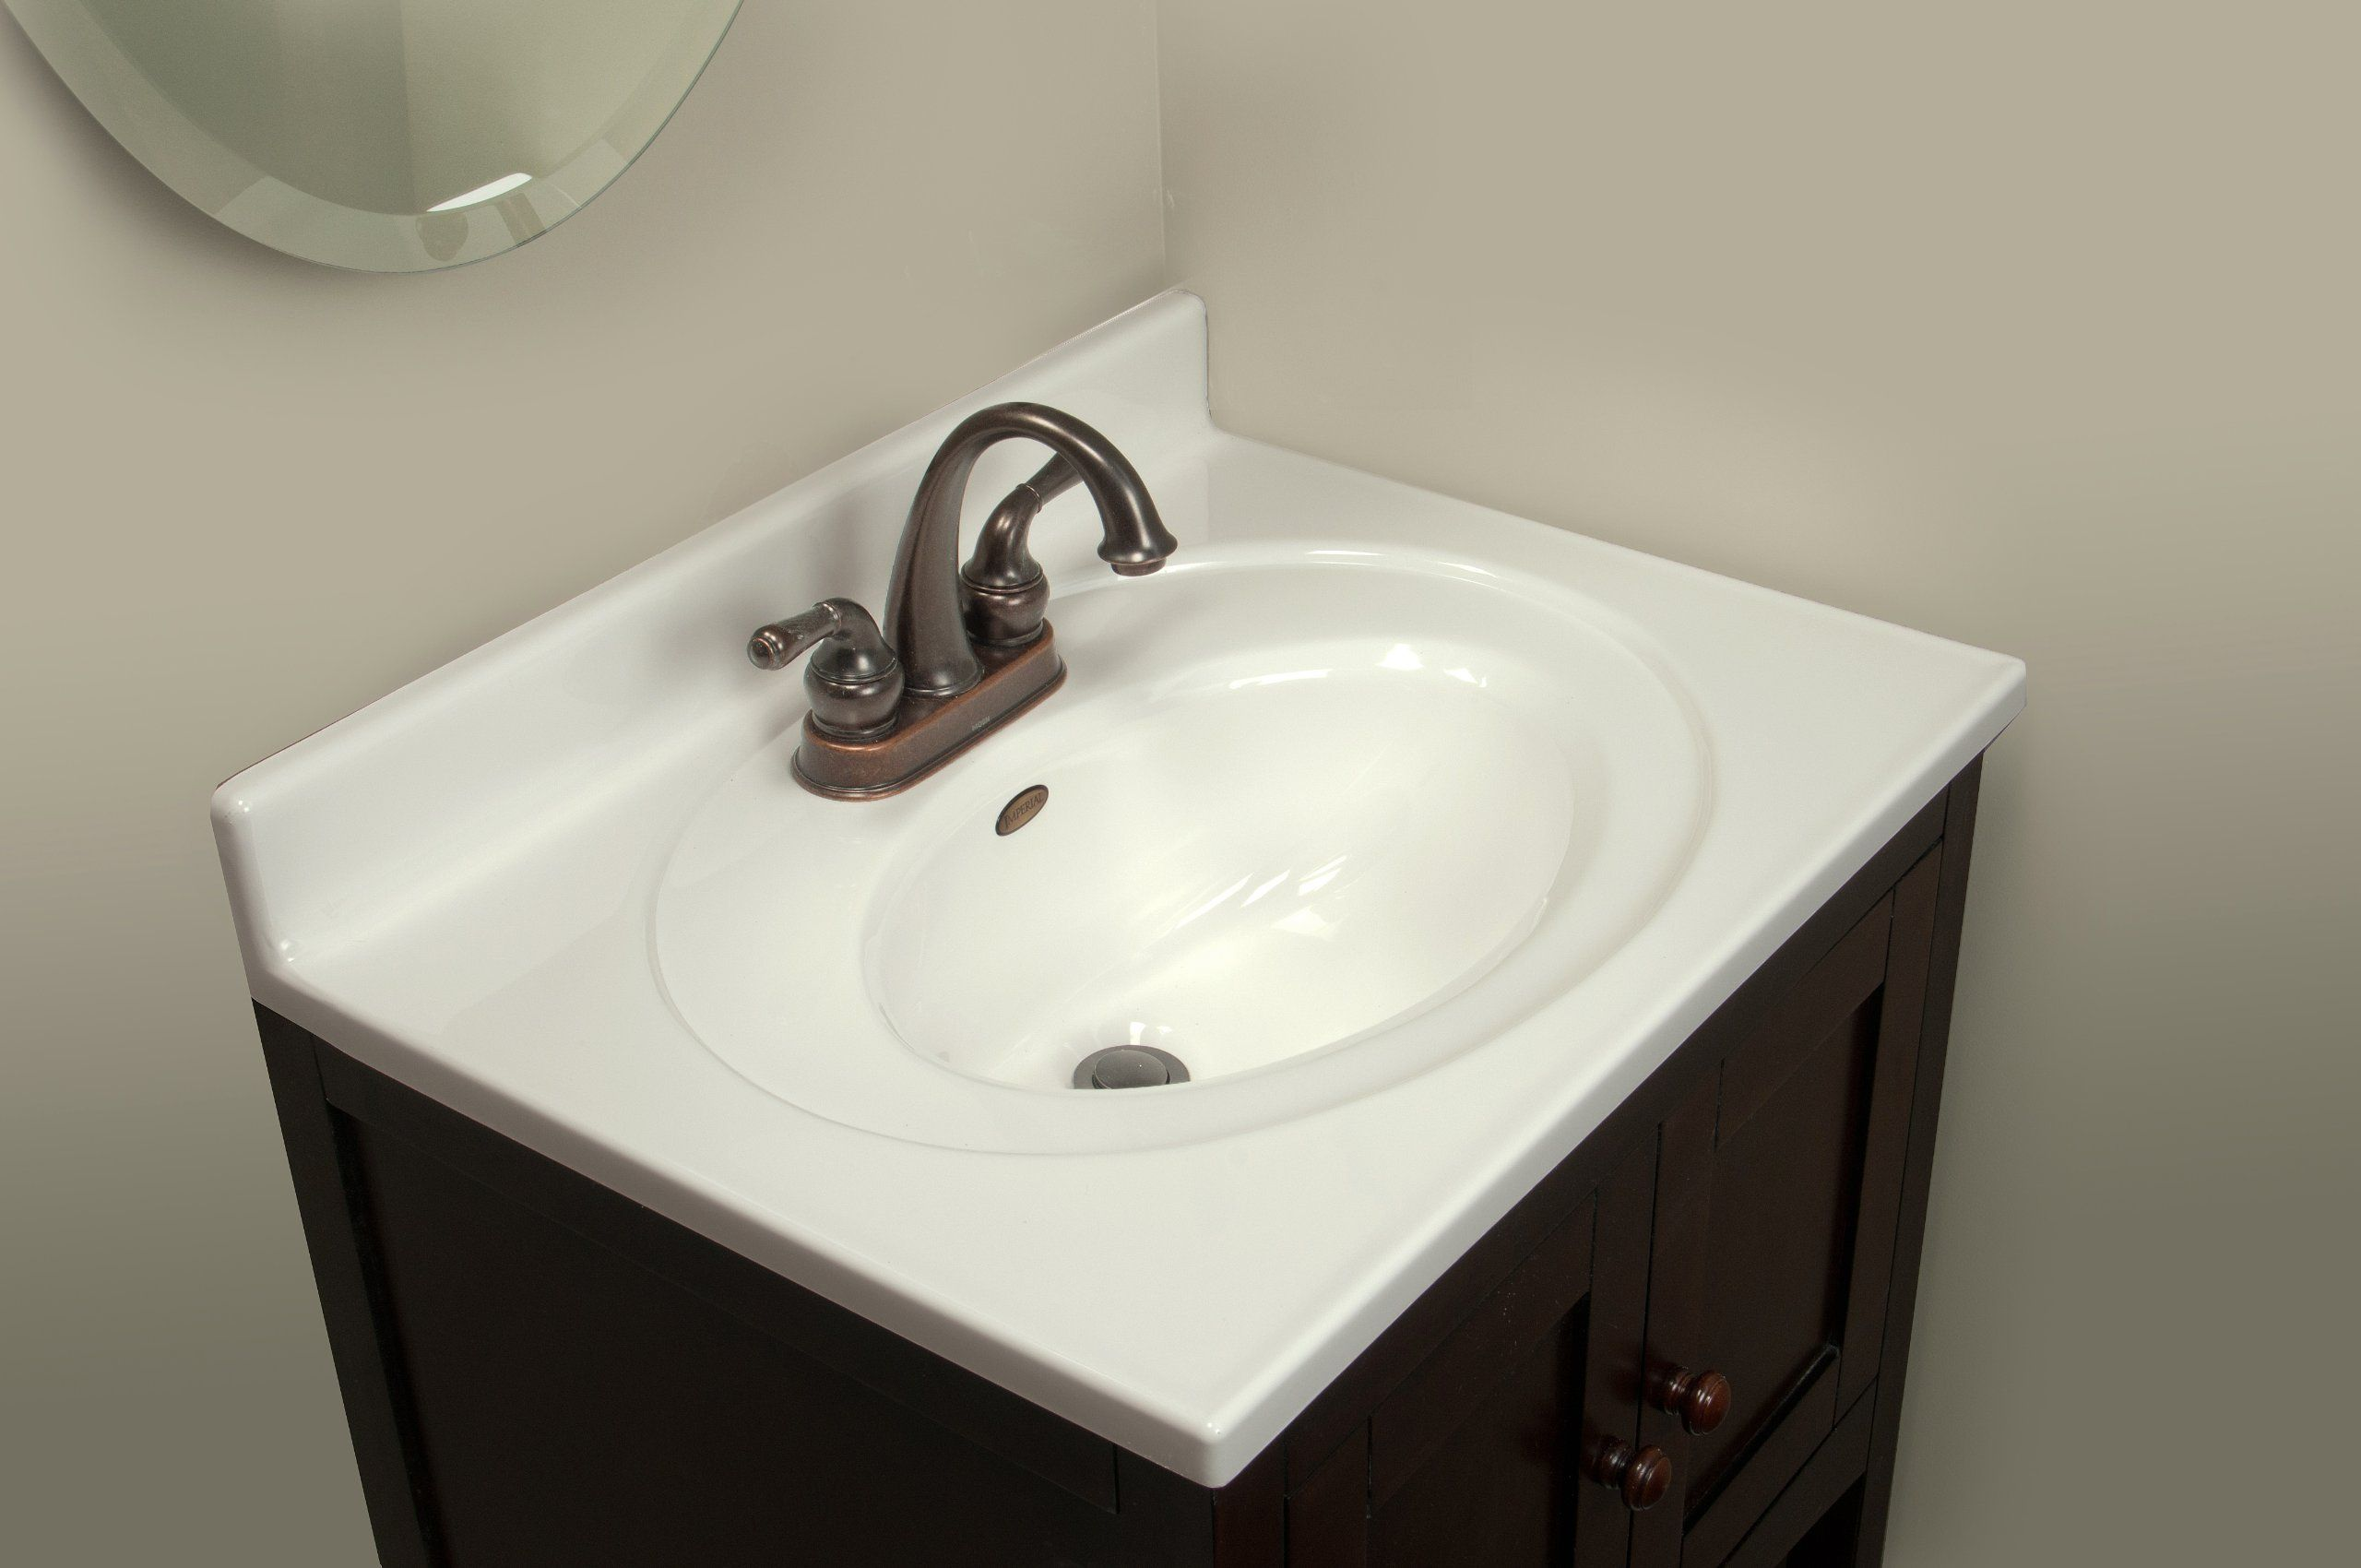 Imperial Fs2519spw Bathroom Vanity Top With Recessed